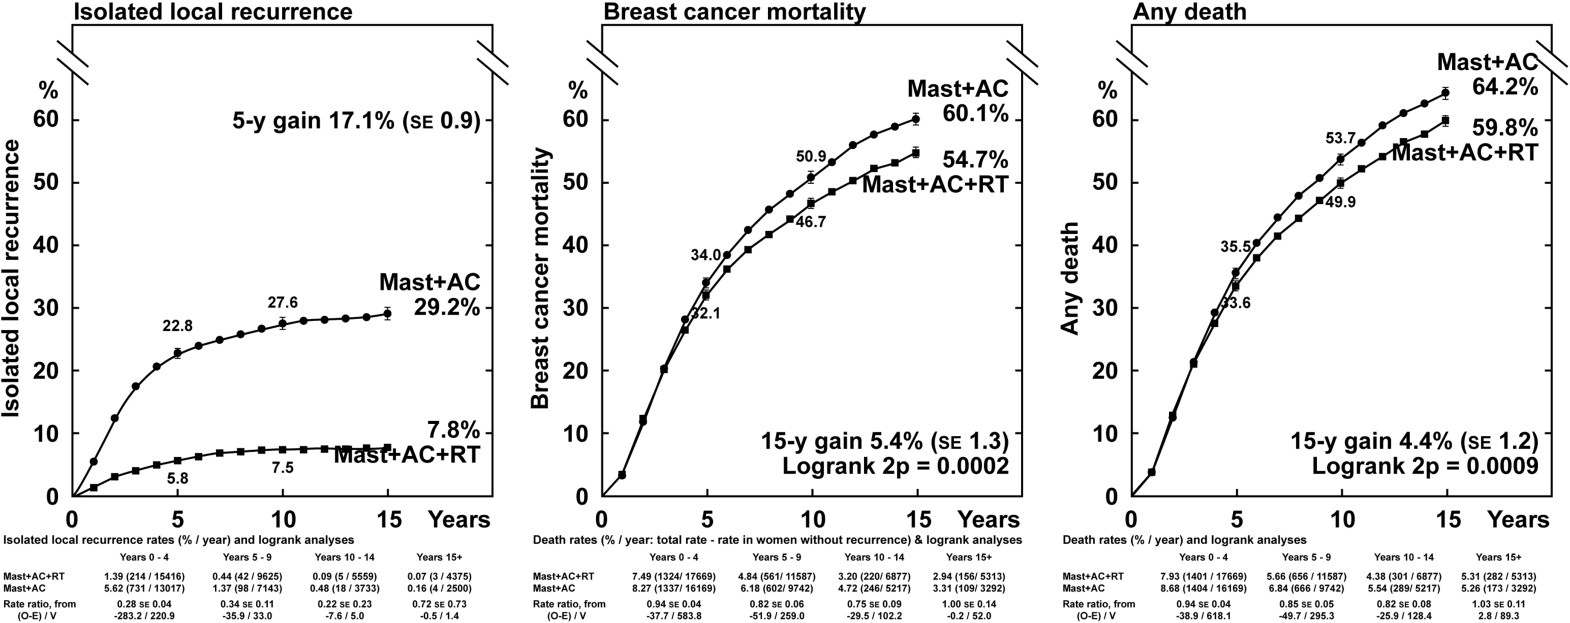 In locally advanced breast cancer